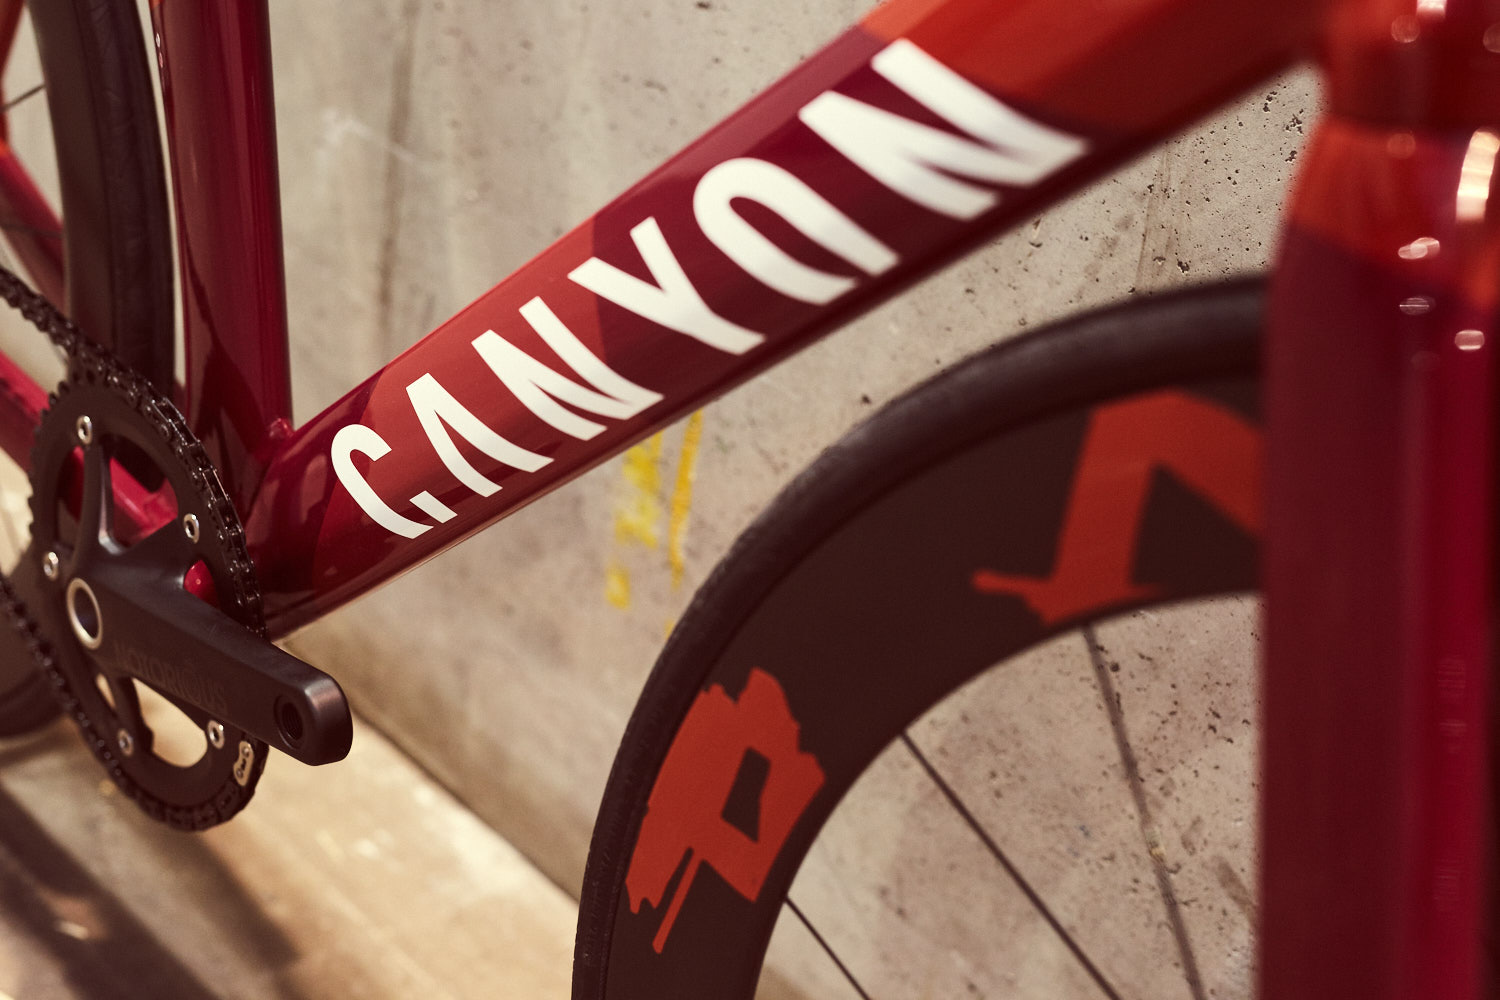 The CANYON V-RAD - Designed by CANYON BIKES, KOBLENZ. The CURRENT RAD PACK SET UP COMES WITH a DT SWISS RC55 TRACK WHEELSET and a selle san marco concor saddle.